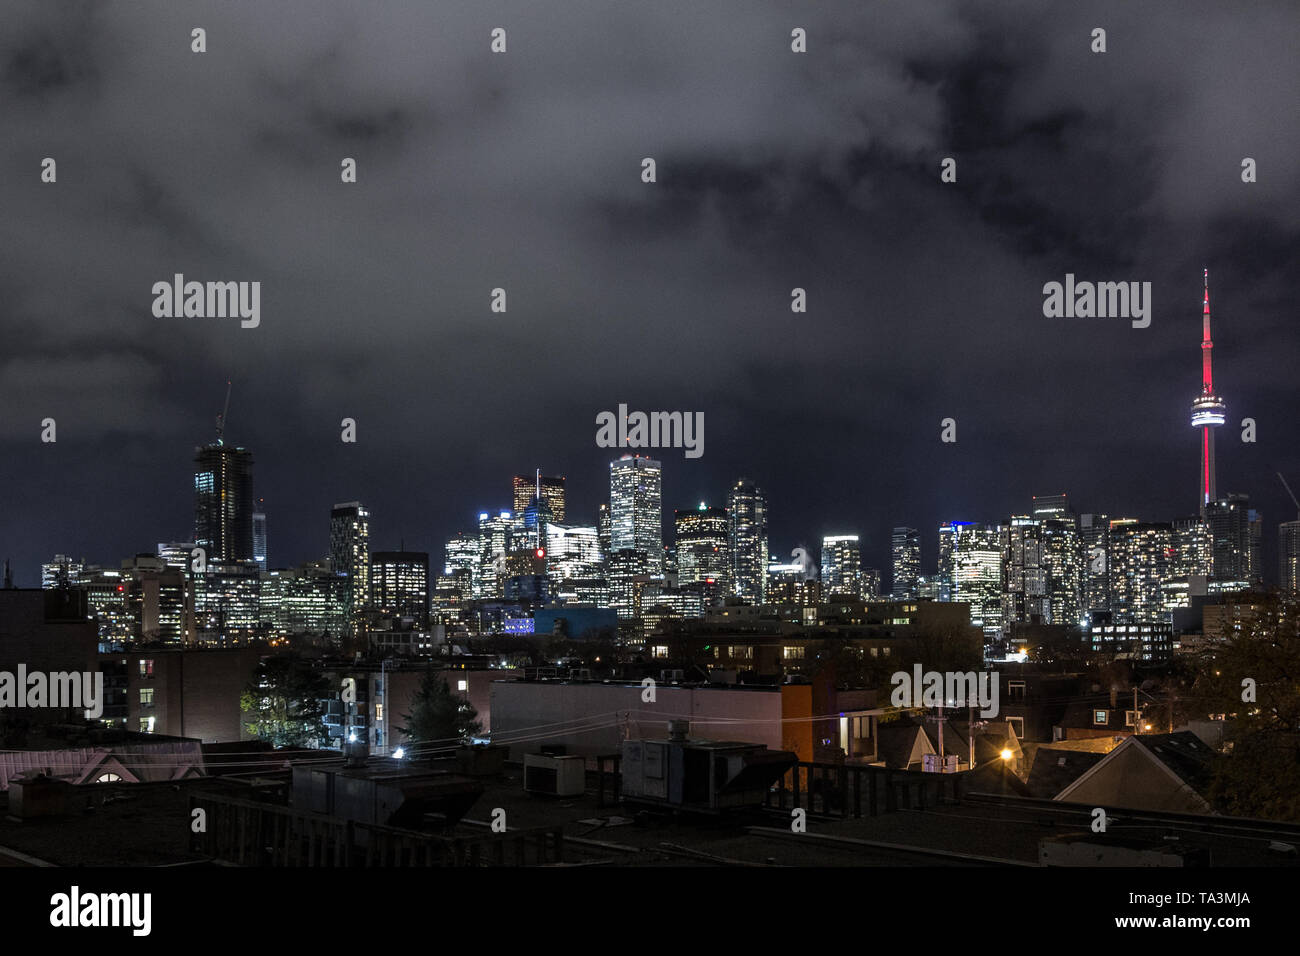 Toronto skyline, with the iconic towers and buildings of the Downtown and the CBD business skyscrapers at nights with lights. Toronto is the main city - Stock Image